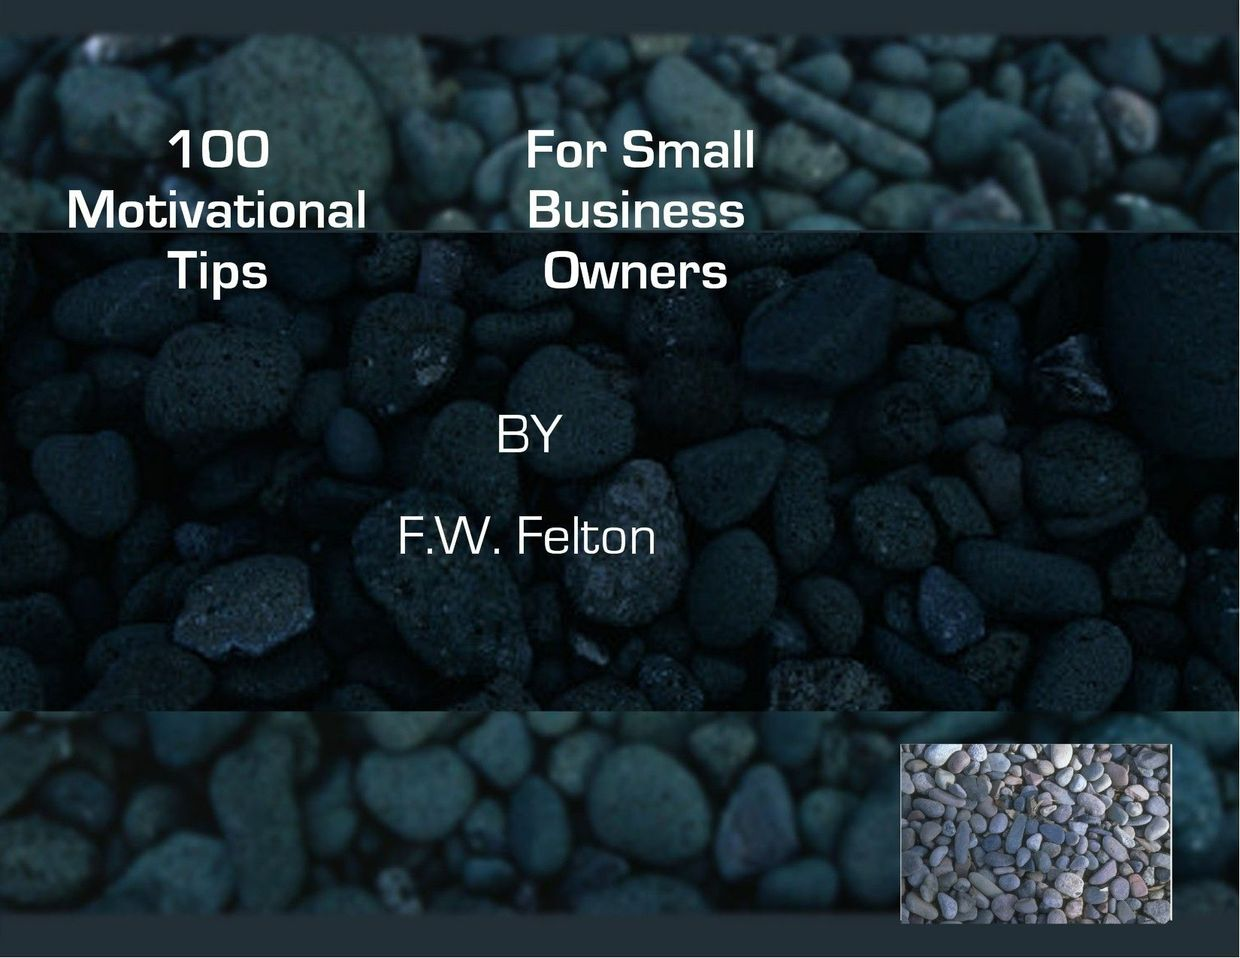 100 Tips For Small Business by Fred Felton